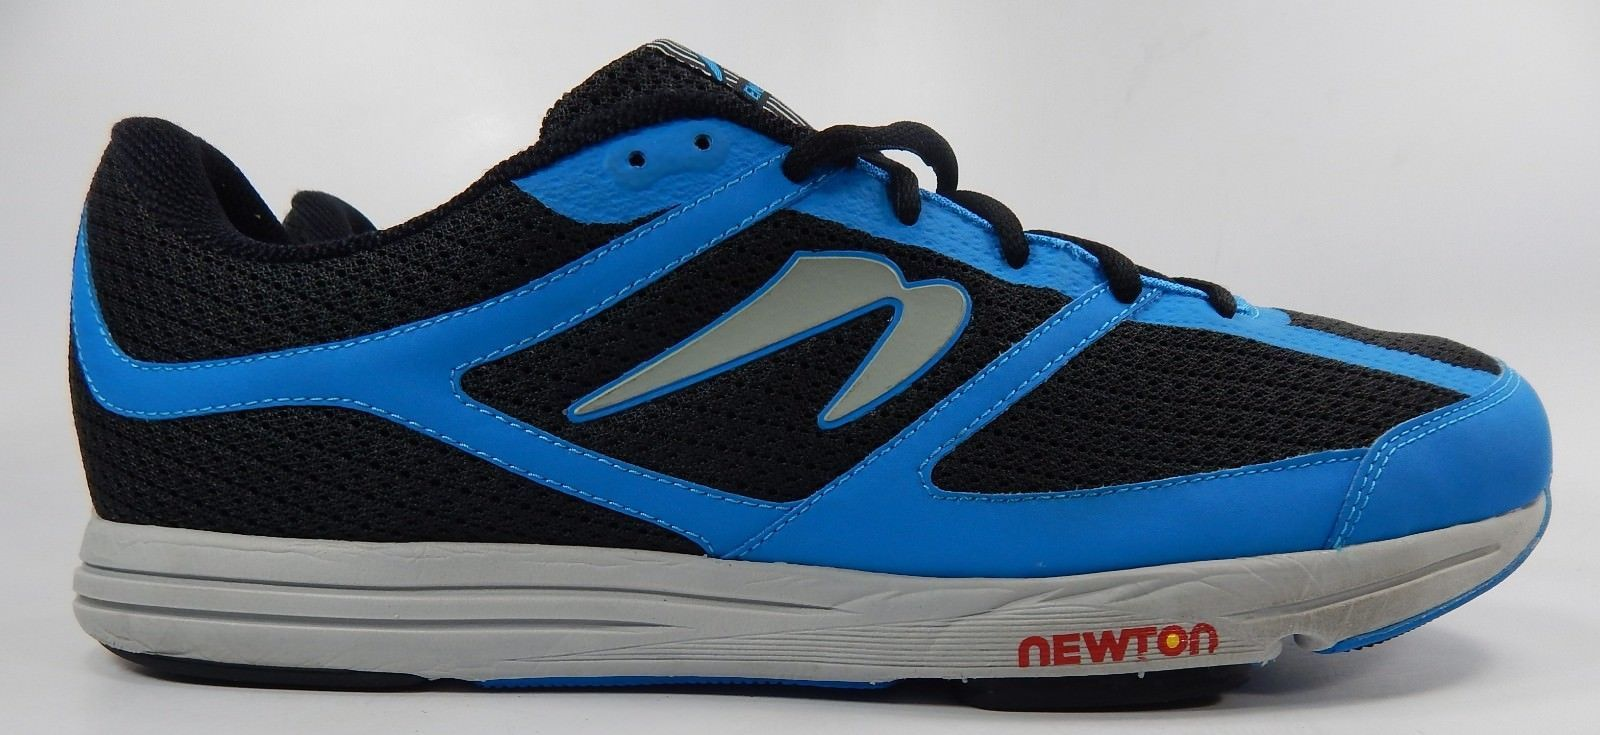 Newton Energy NR Men's Running Shoes Size US 14 M (D) EU 48 Blue Black 004313